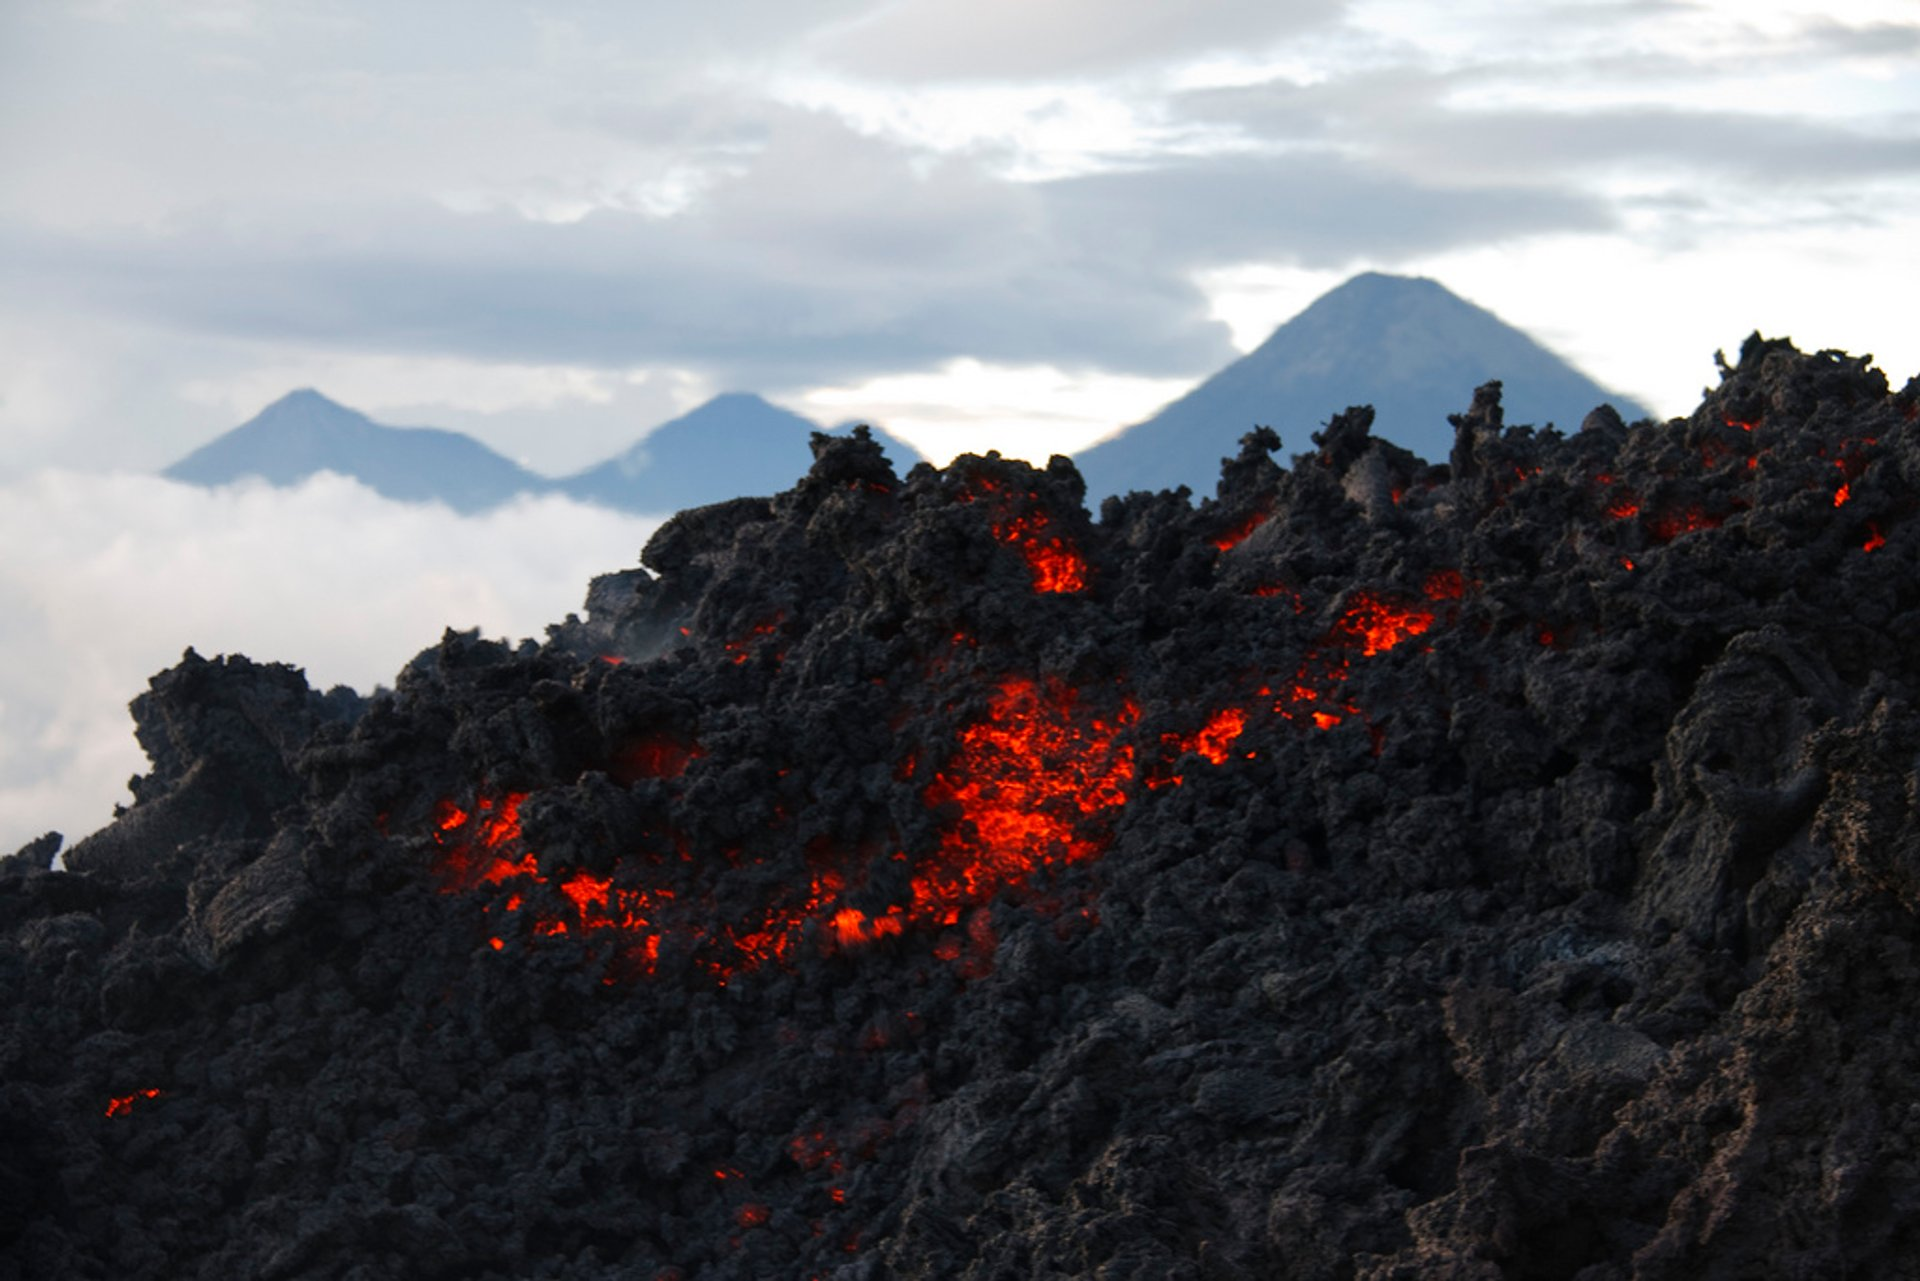 Lava flow on Volcan Pocaya 2020